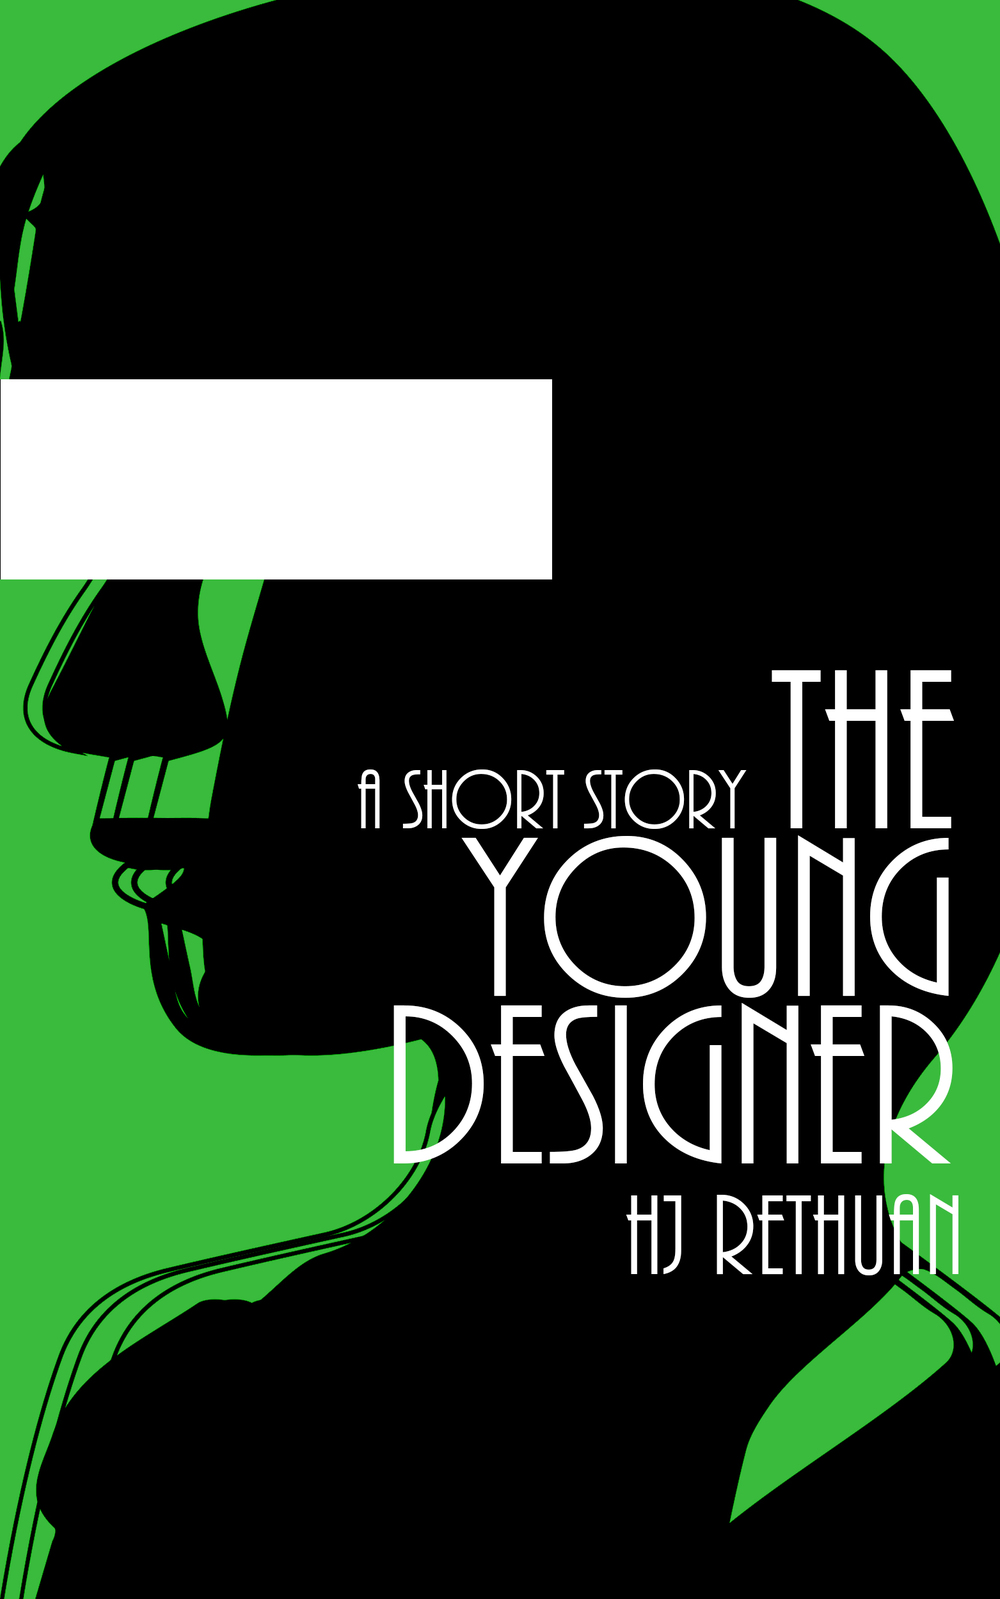 The Young Designer